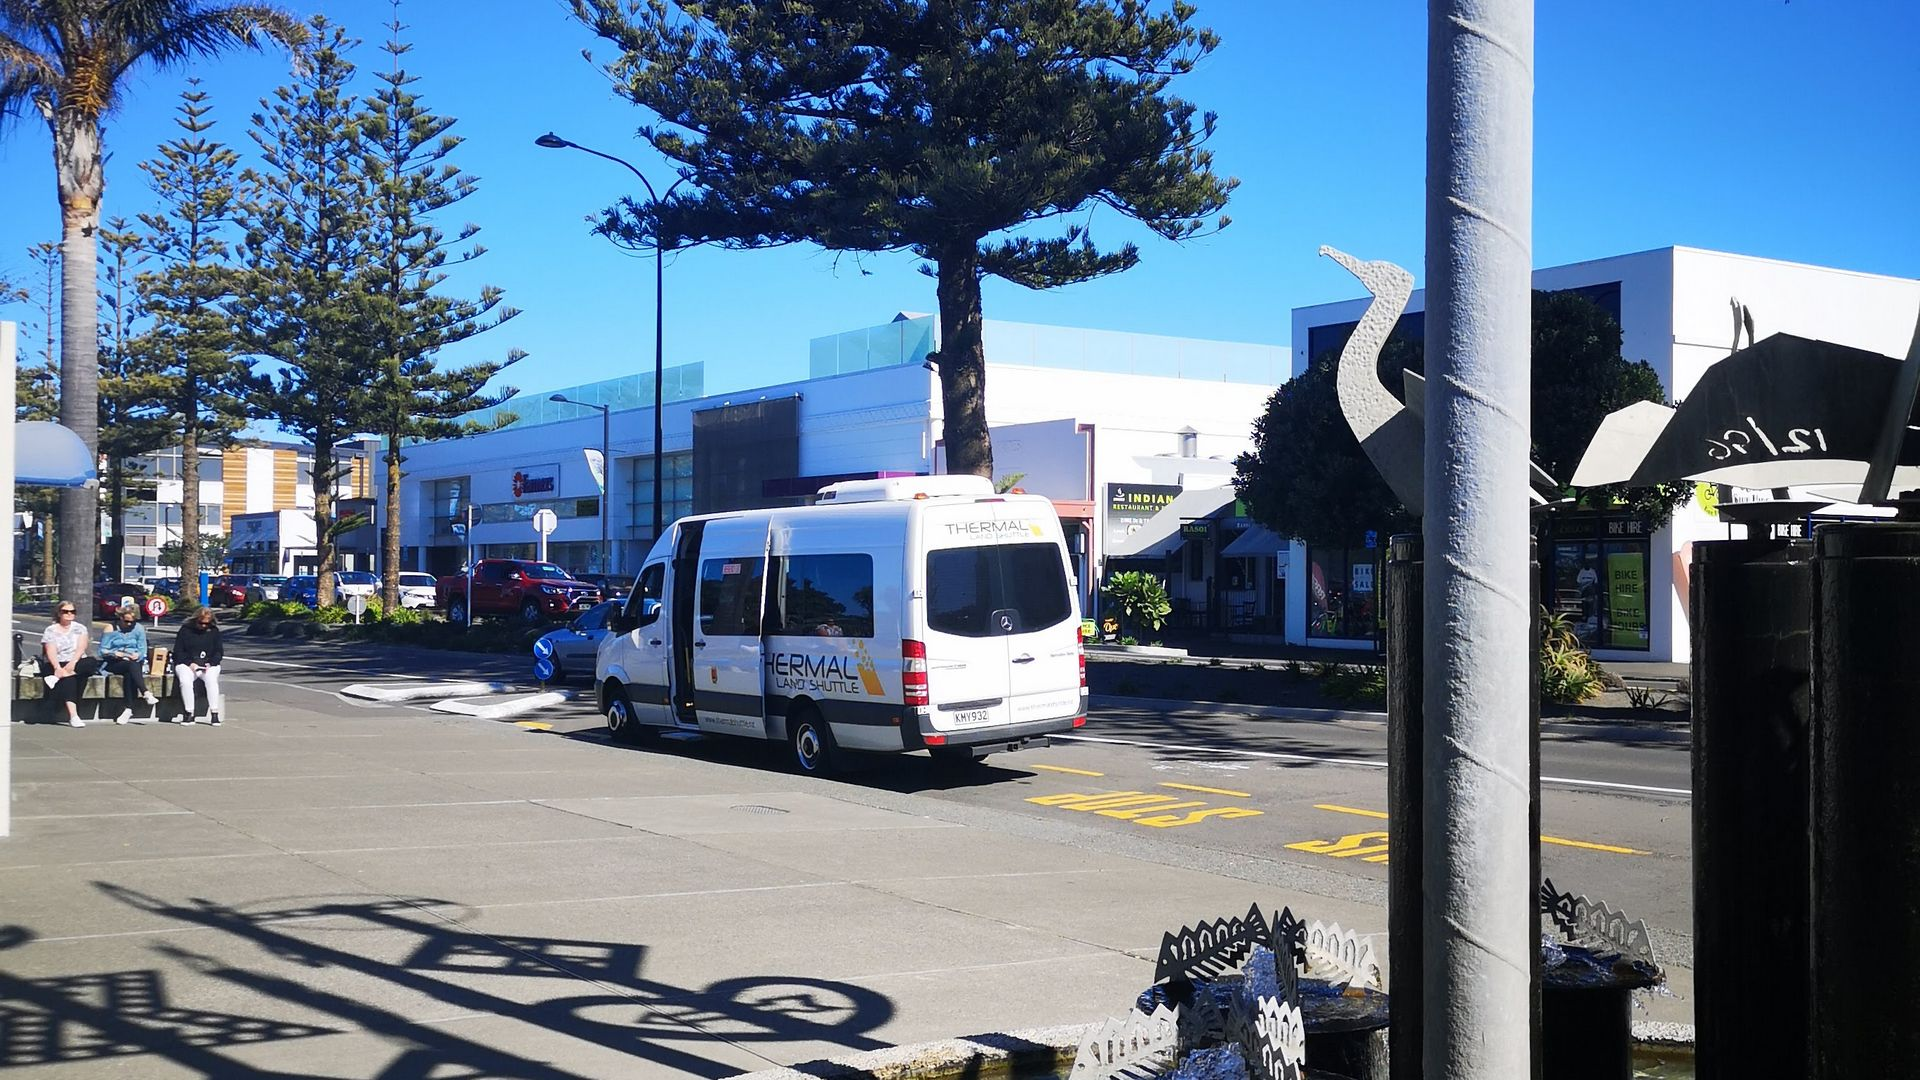 Thermal Land Shuttle Charter